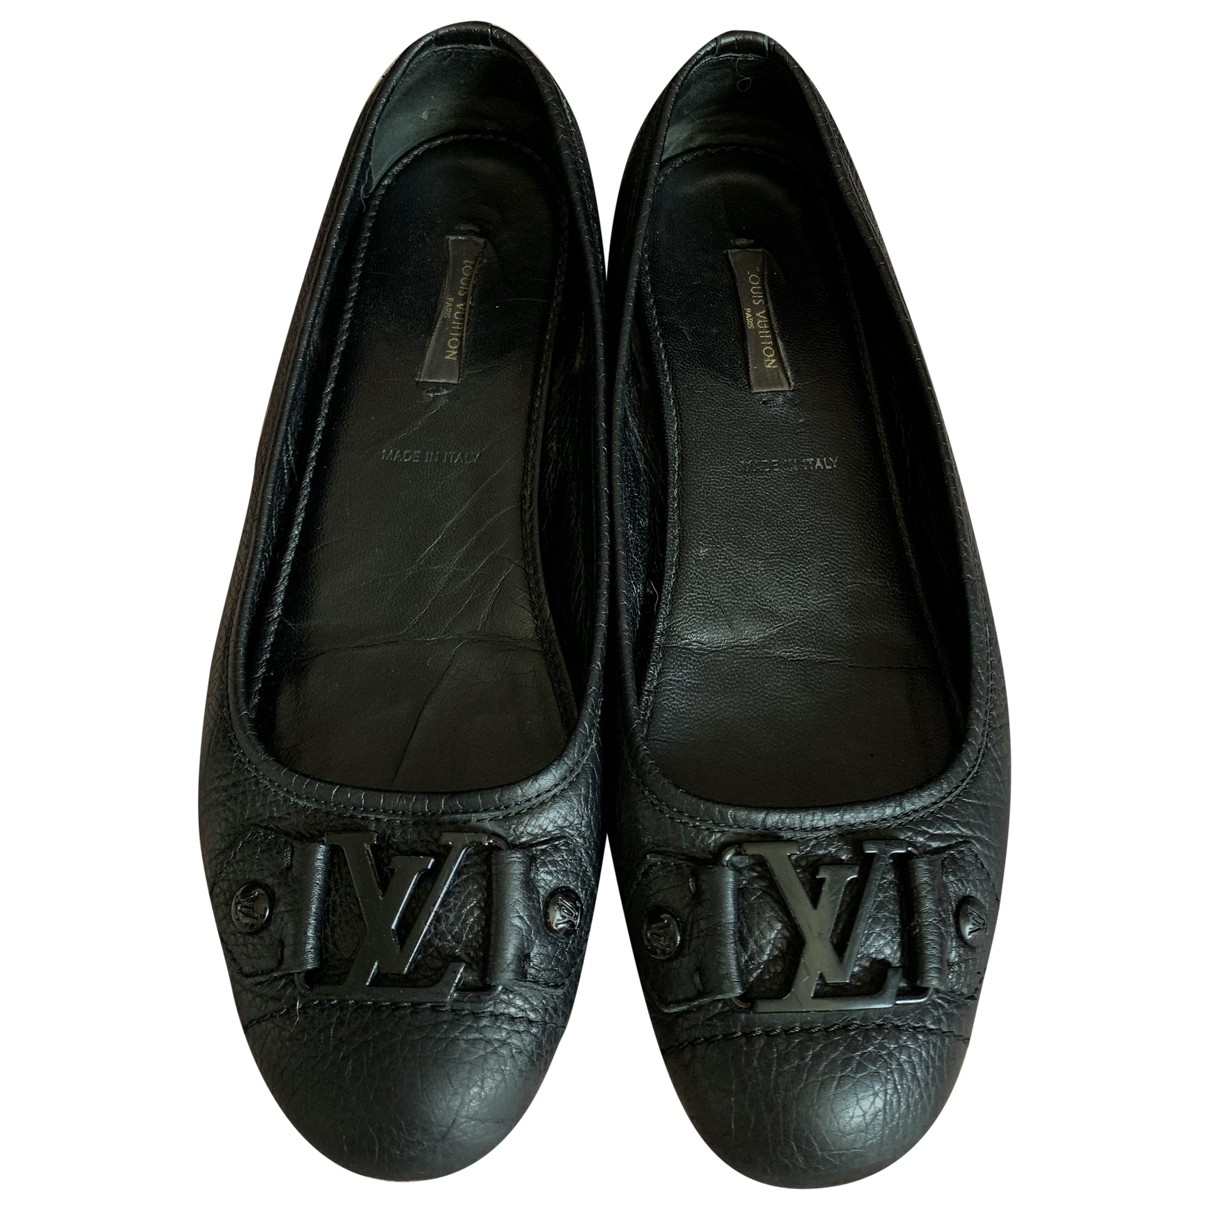 Louis Vuitton \N Black Leather Ballet flats for Women 37.5 EU